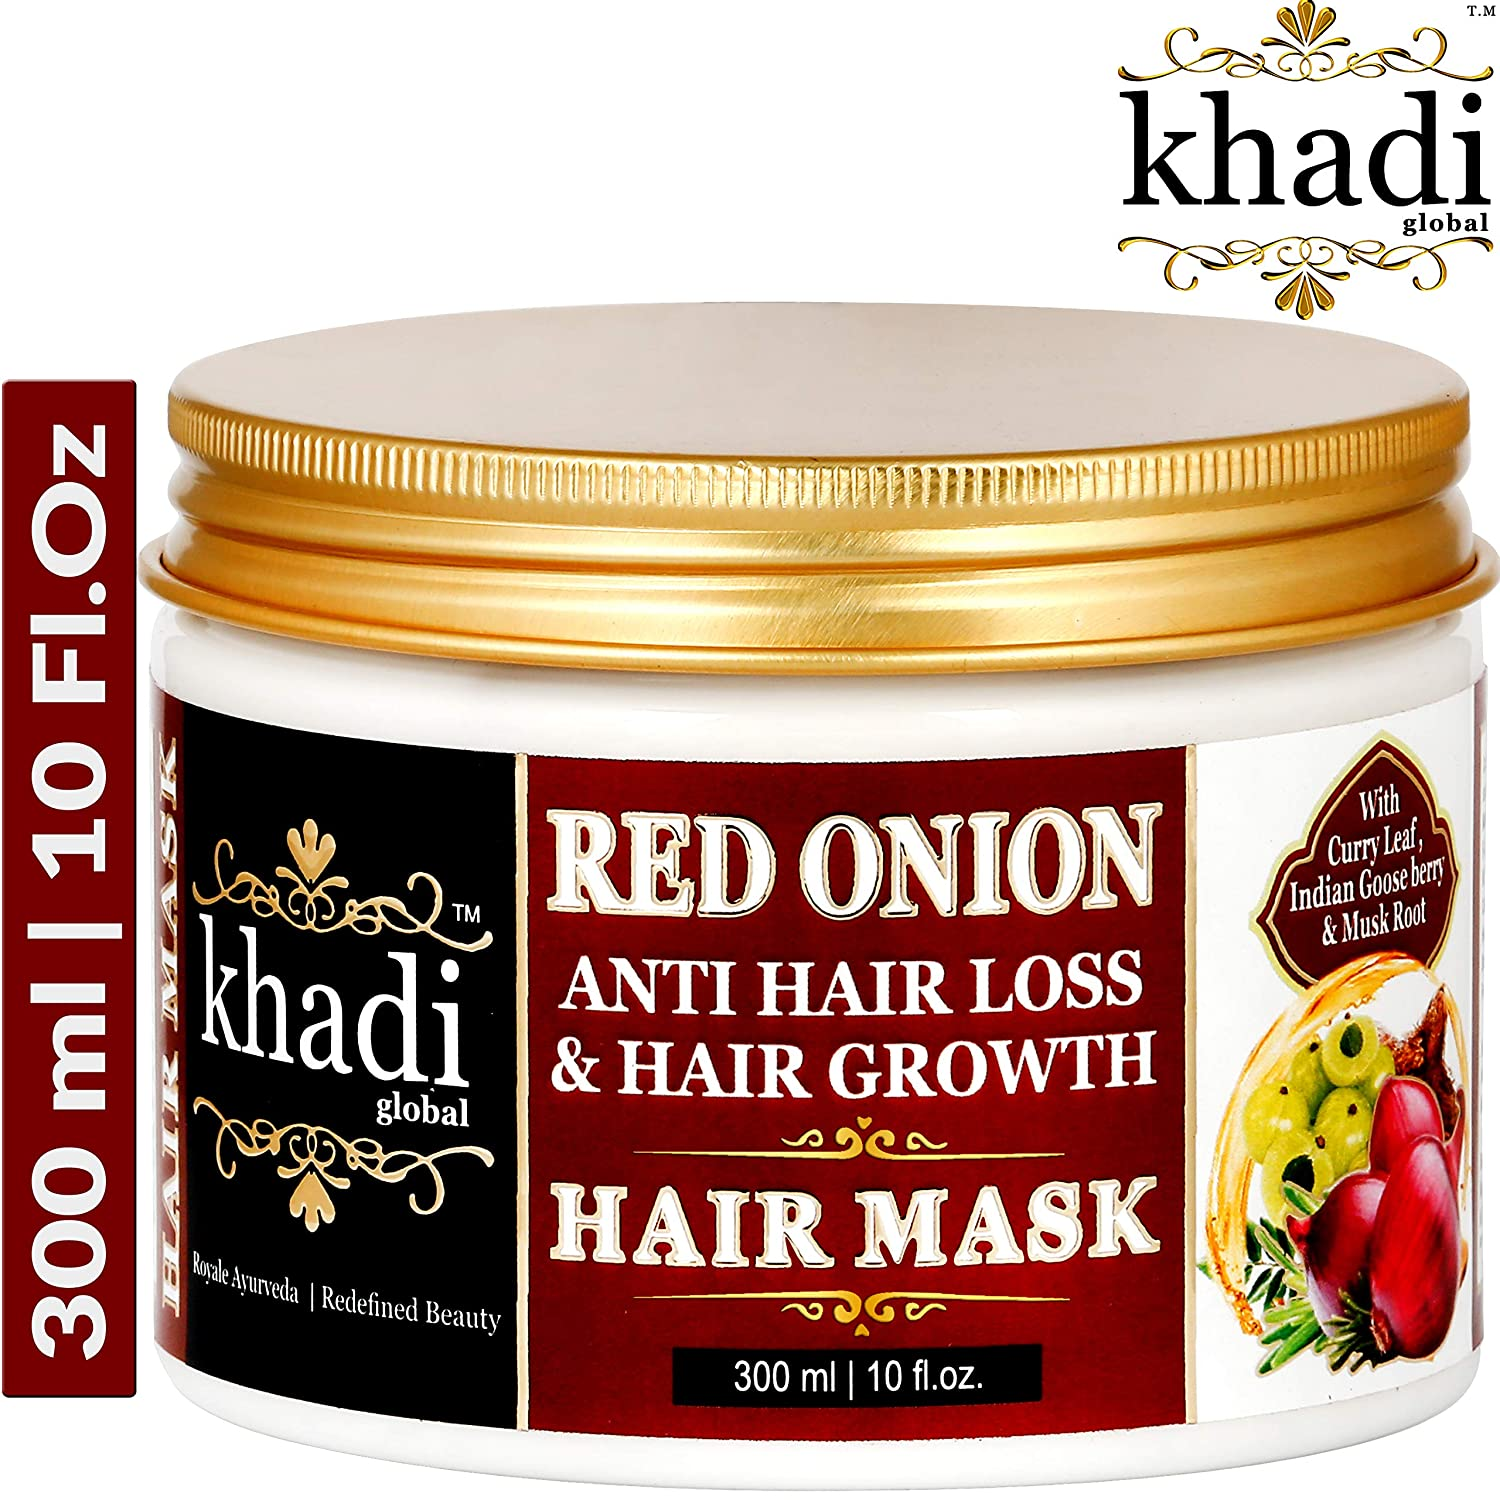 Khadi Global Red Onion Oil Anti Hair Loss & Hair Growth Deep